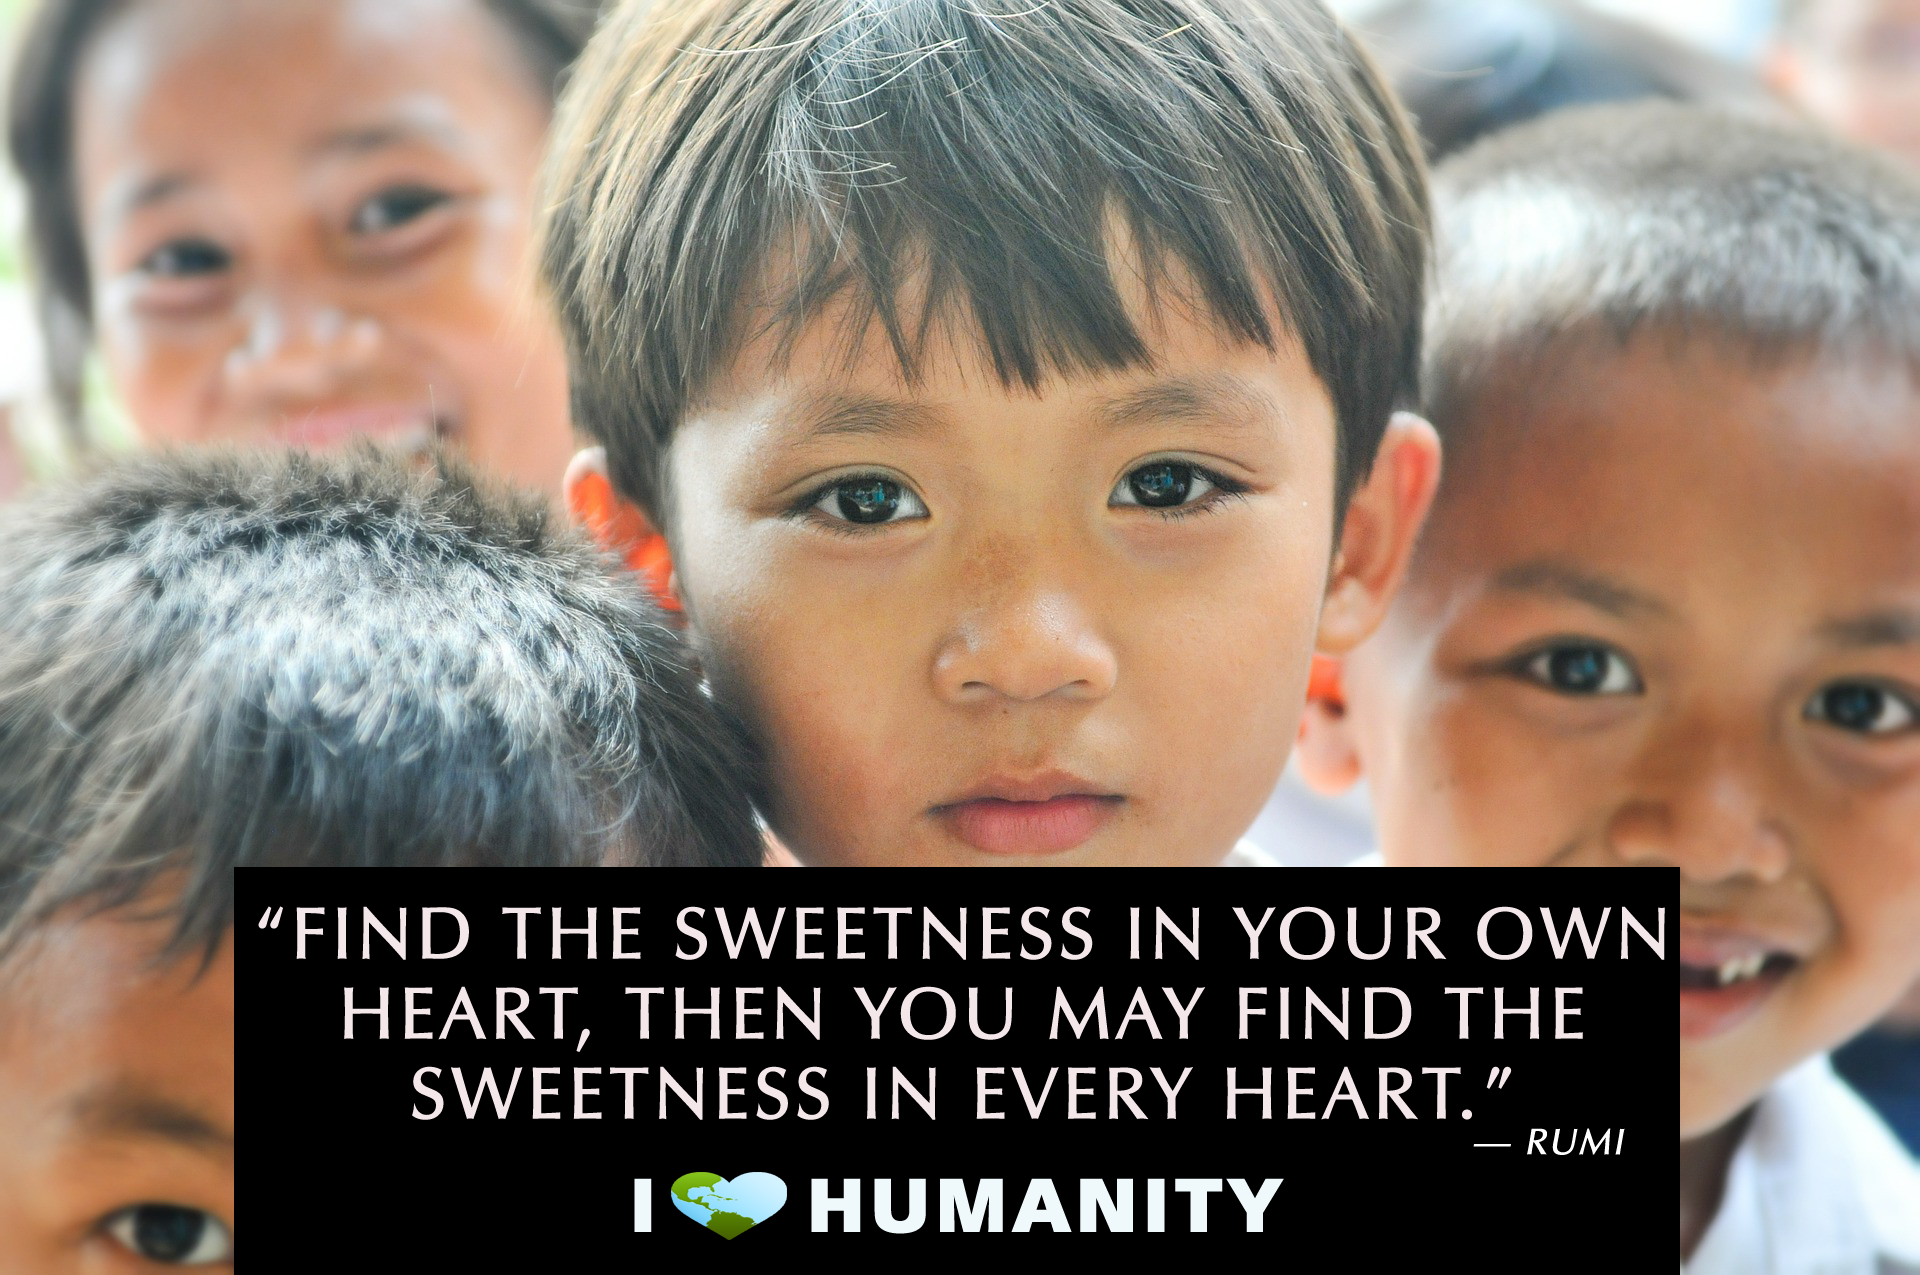 I Love Humanity Famous Humanity Quotes To Change The World A Collection Of Intelligent